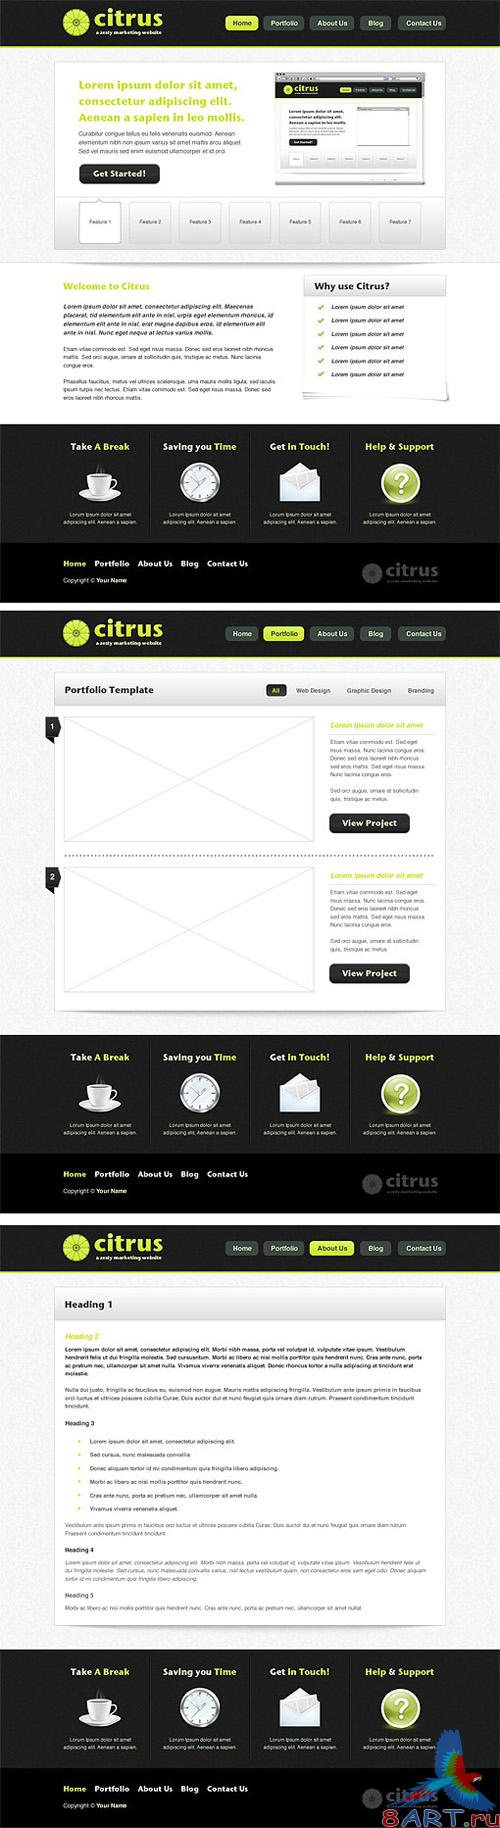 MediaLoot Citrus Marketing Website Template PSD and PNG - RETAIL